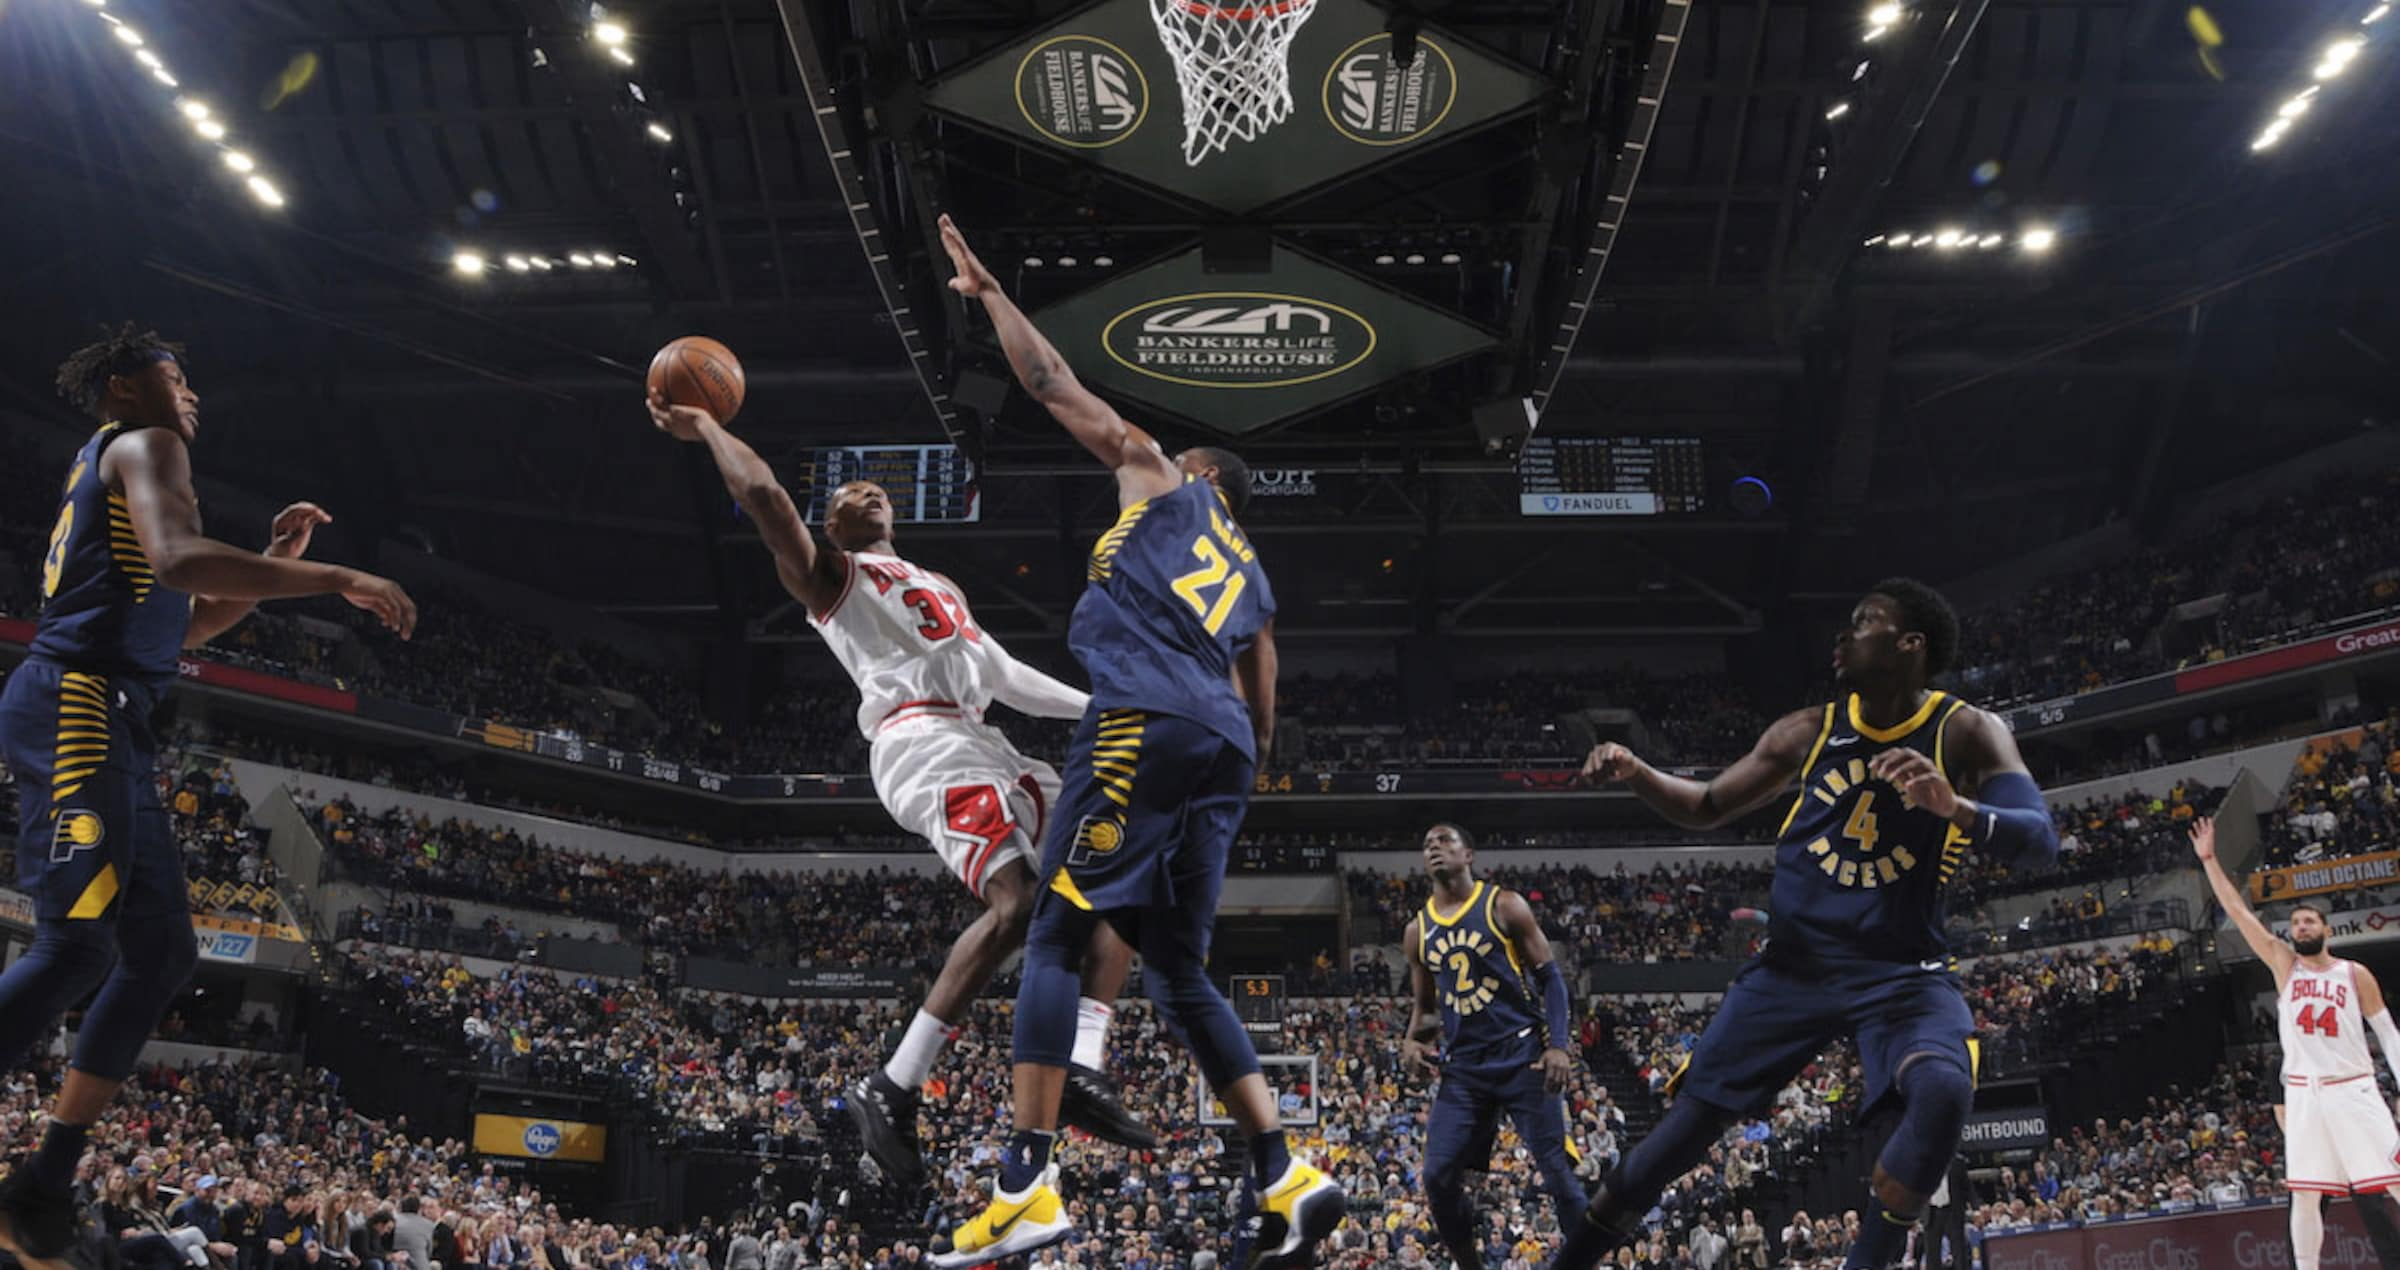 Kris Dunn #32 of the Chicago Bulls shoots the ball against the Indiana Pacers.